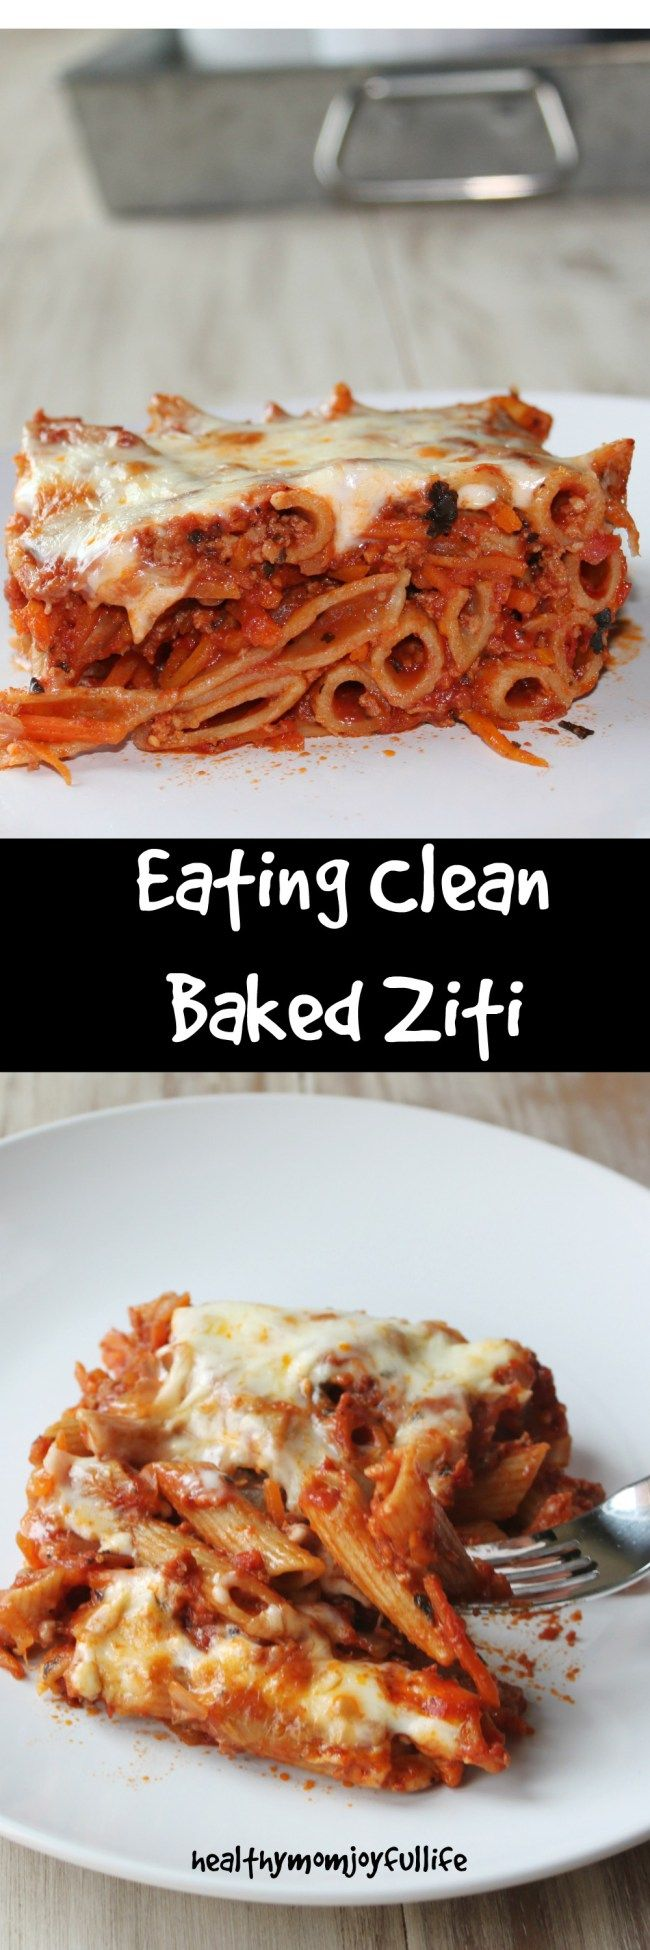 Baked Ziti- Eating Clean for the family-Healthy Mom Joyful Life